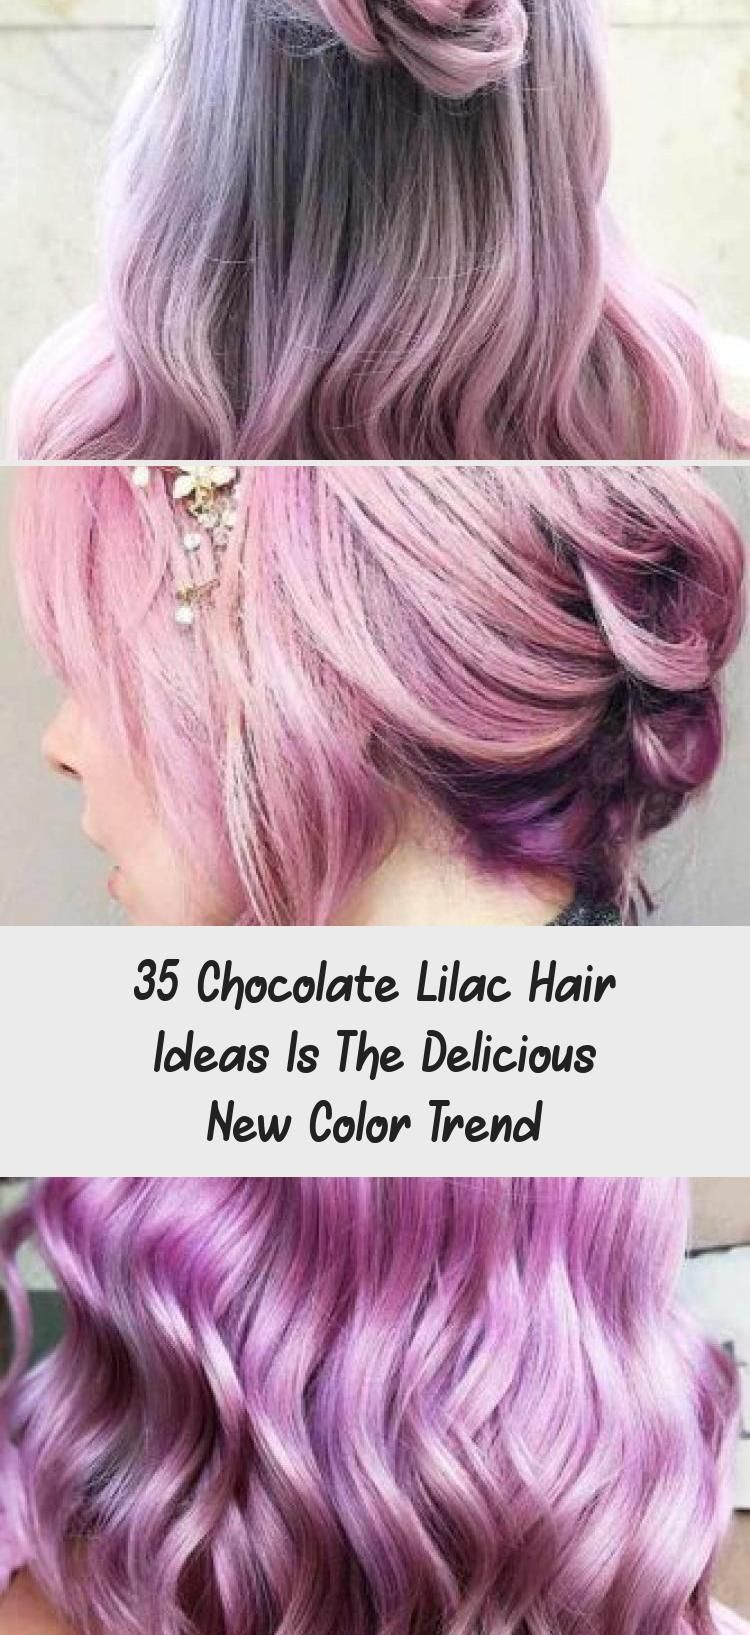 35 Chocolate Lilac Hair Ideas Is The Delicious New Color Trend